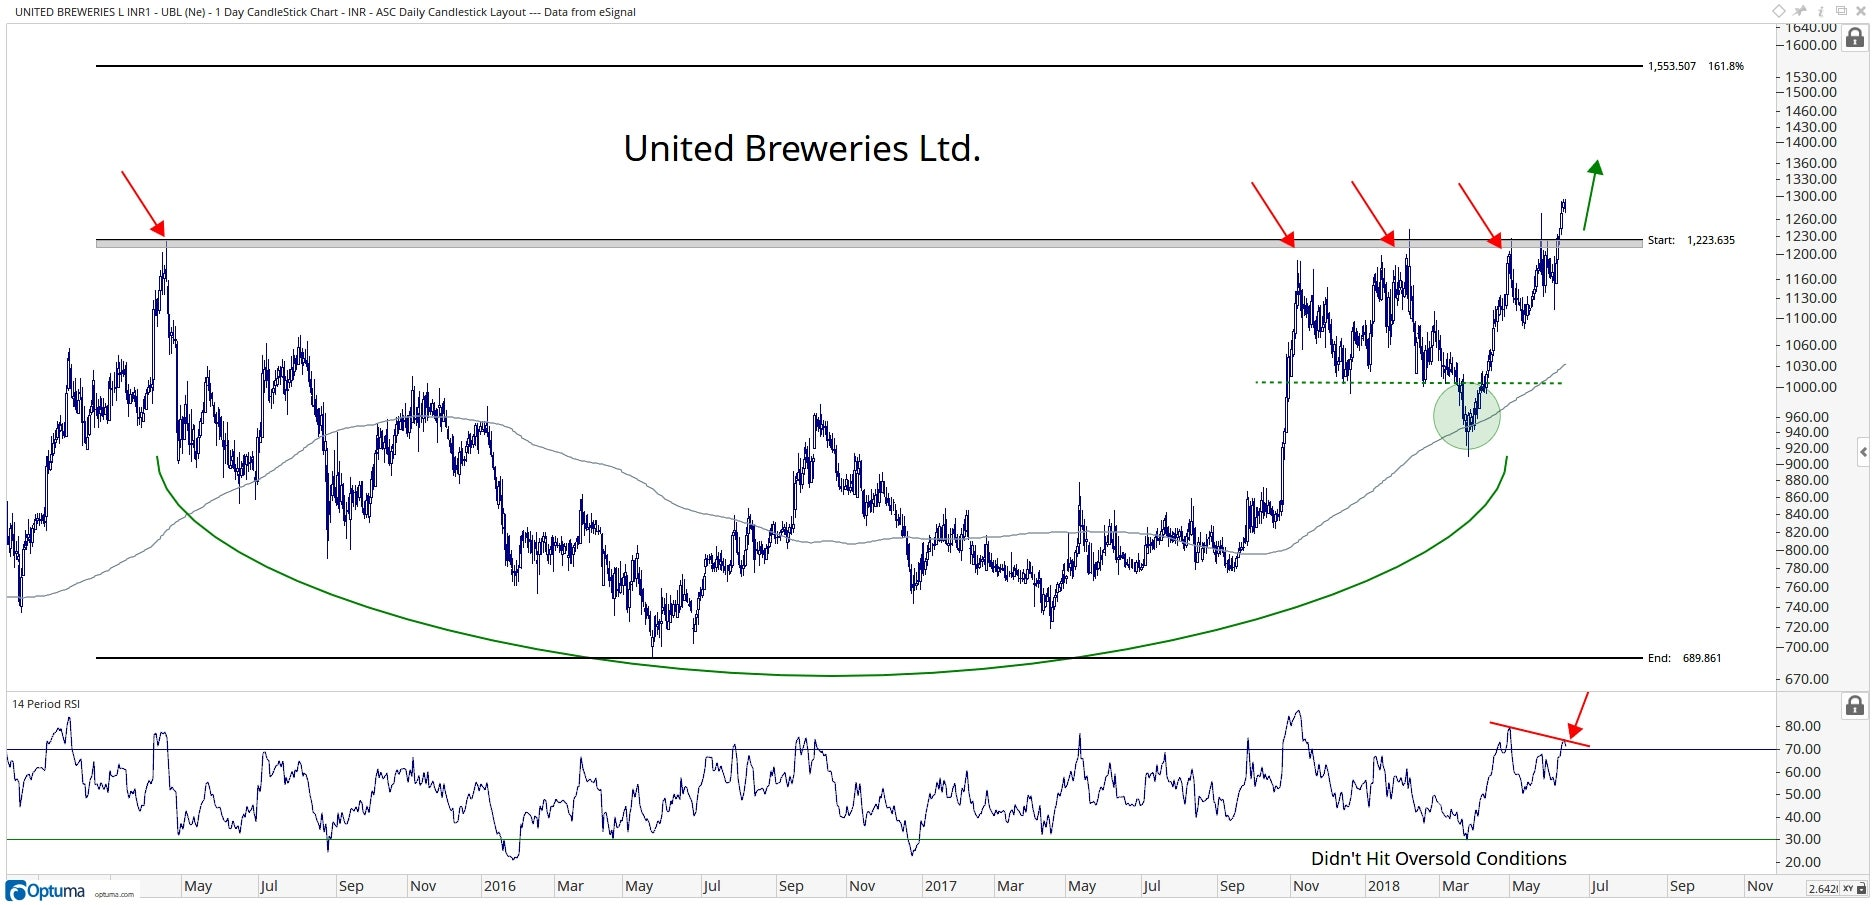 Technical chart showing the performance of United Breweries Limited (UBL.BO) stock